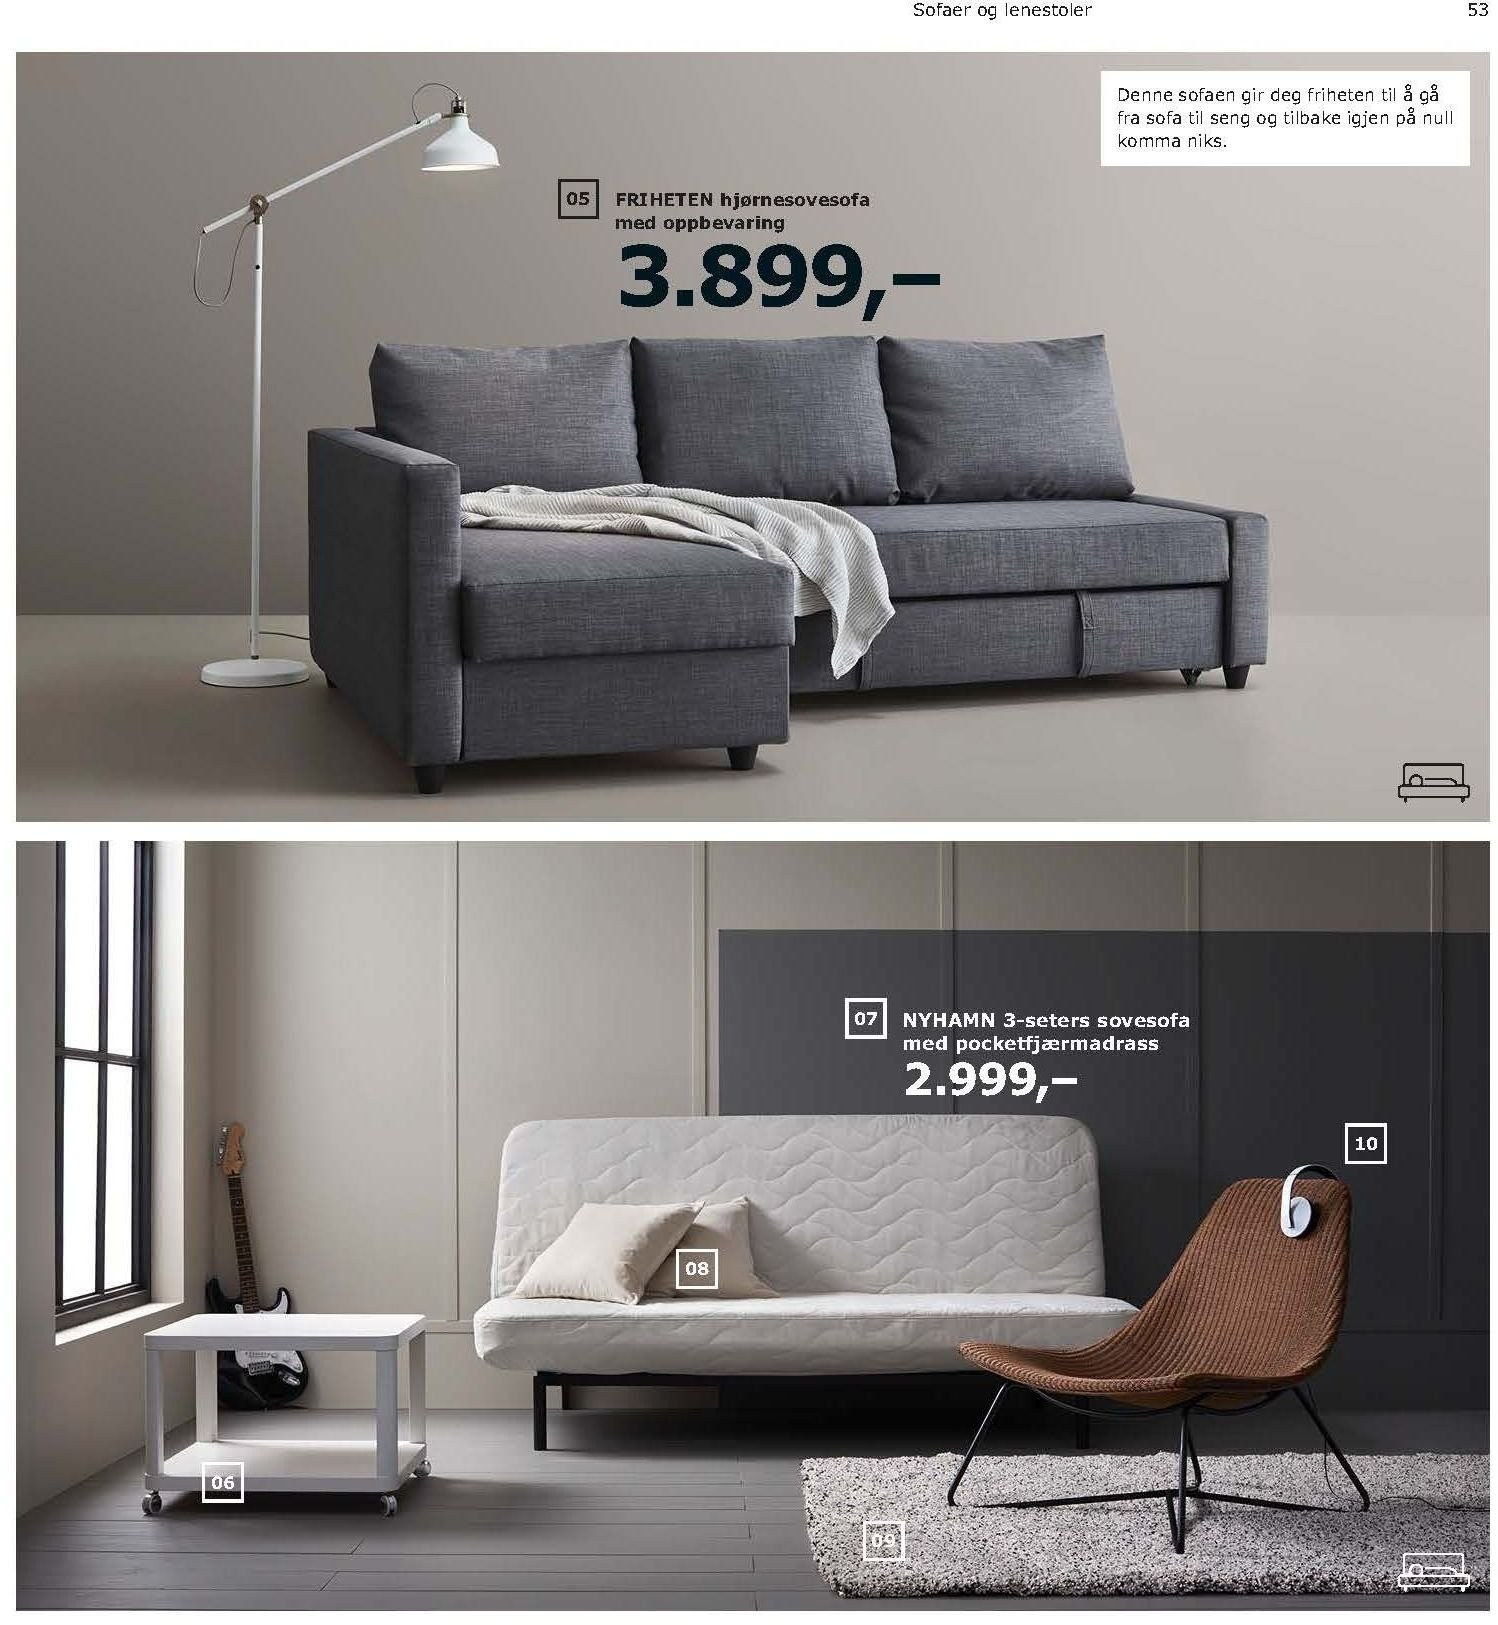 Kundeavis IKEA - 21.08.2018 - 11.08.2019. Side 53.